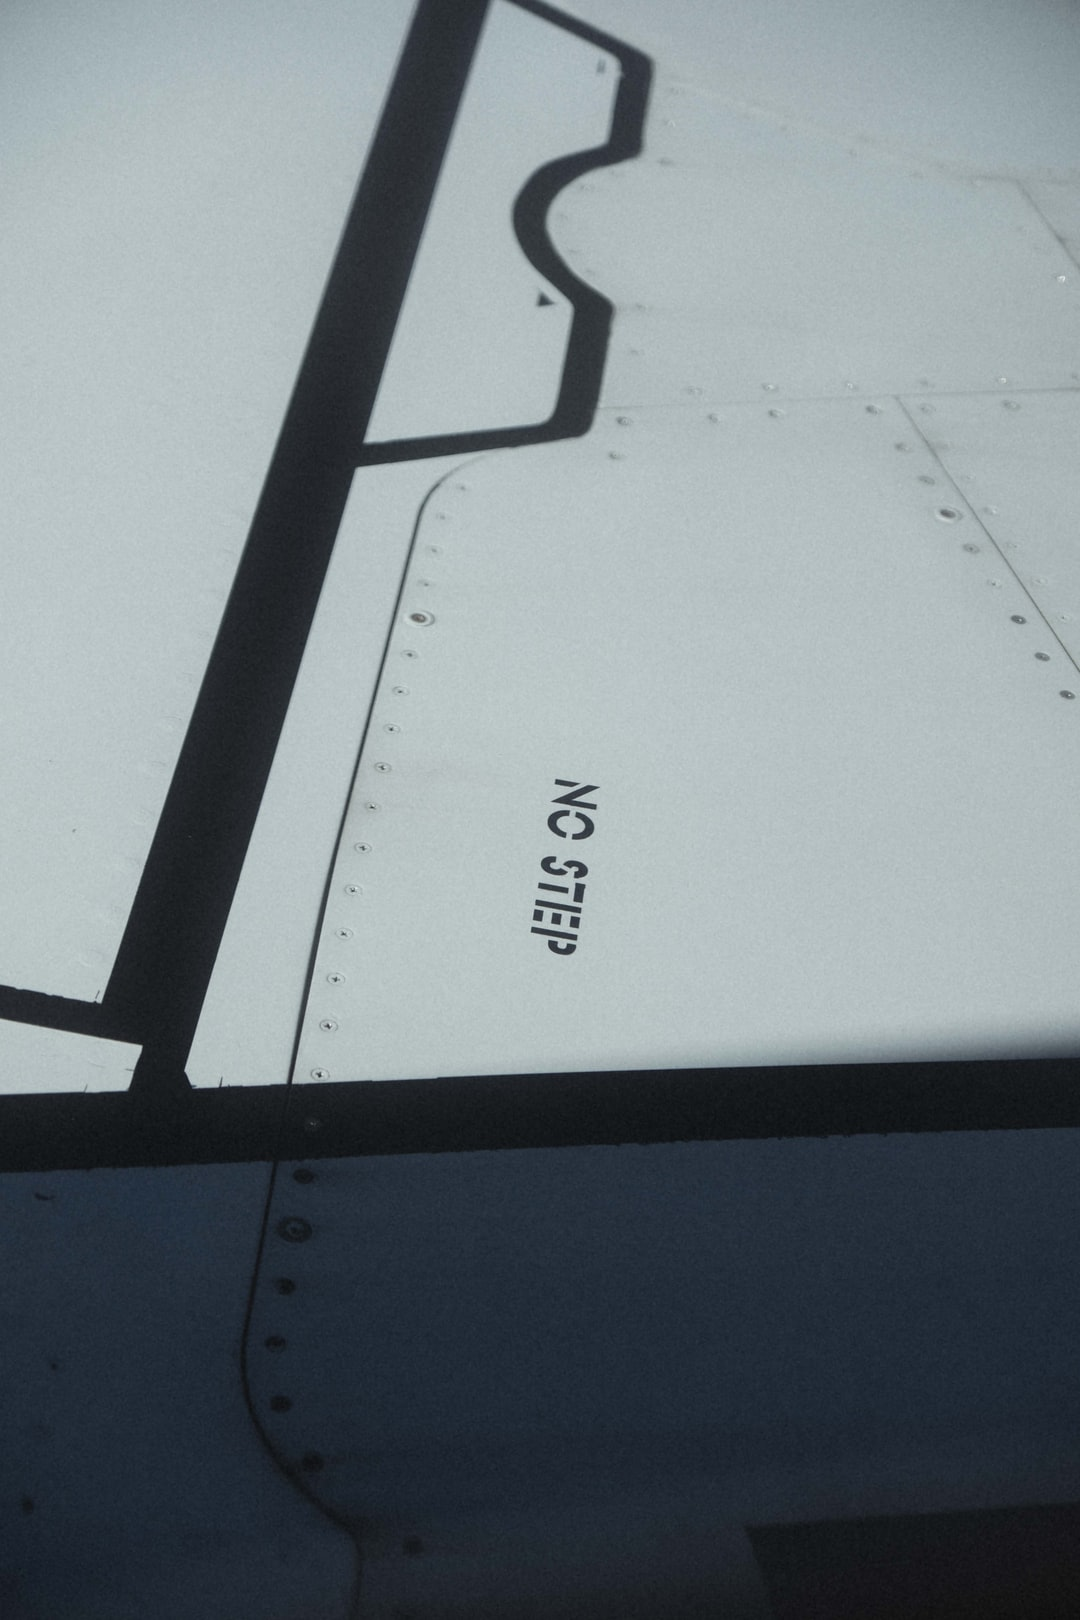 part of an airplane wing that says 'no step'